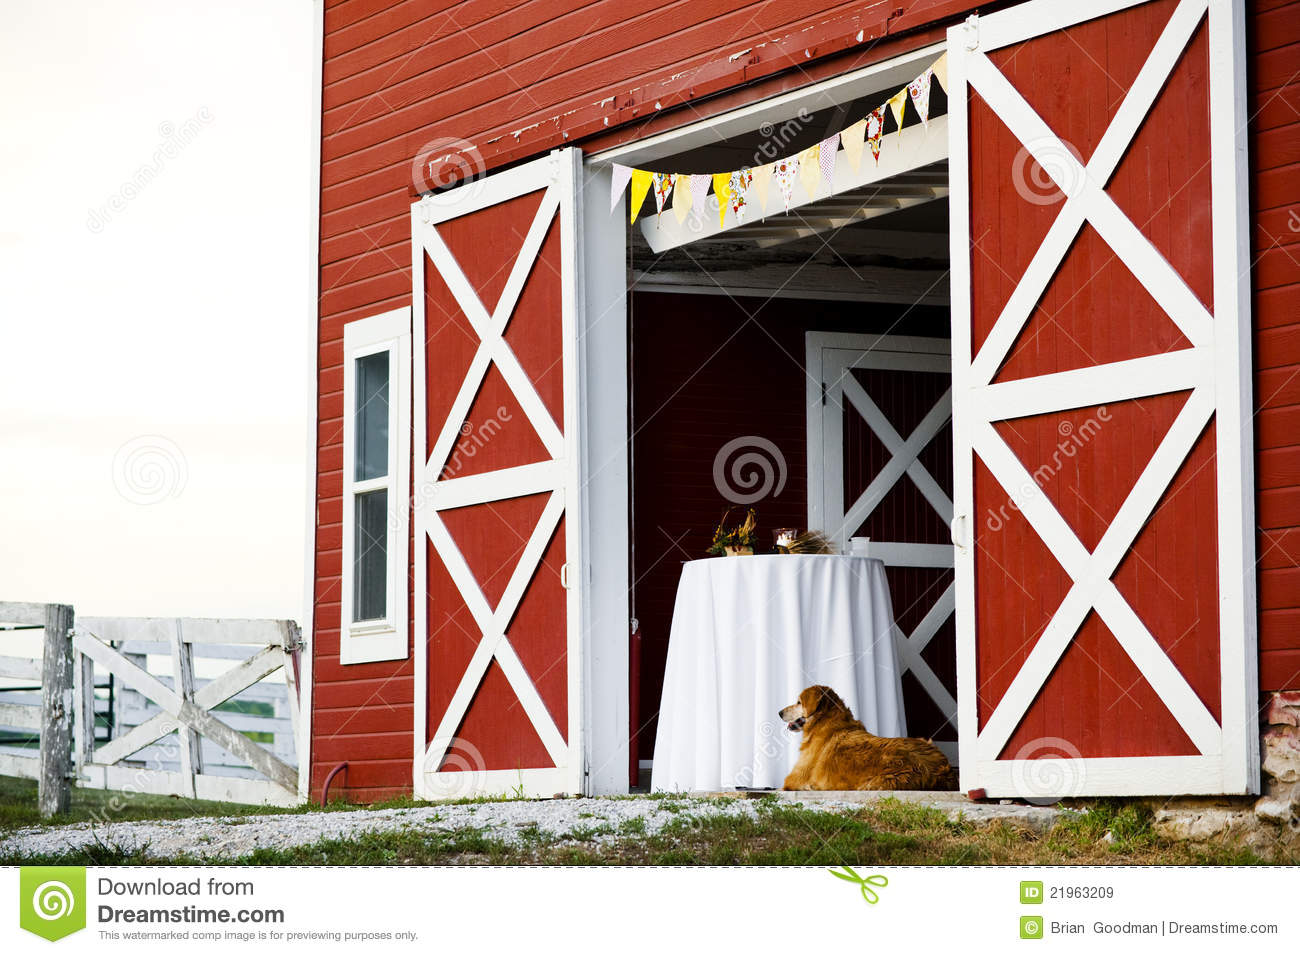 Dog And Barn Royalty Free Stock Images  Image 21963209. Locksmith In Waxahachie Tx Drip Common Stock. How To Measure Speed Of Internet Connection. Jeep Dealers Northern Virginia. Current Used Auto Loan Rates Sql Basics Ppt. Online Insurance Purchase Denver Tree Removal. Discount Holiday Cards Patent Attorney Salary. How To Replace The Spring On A Garage Door. Biggest Shipping Companies In The World